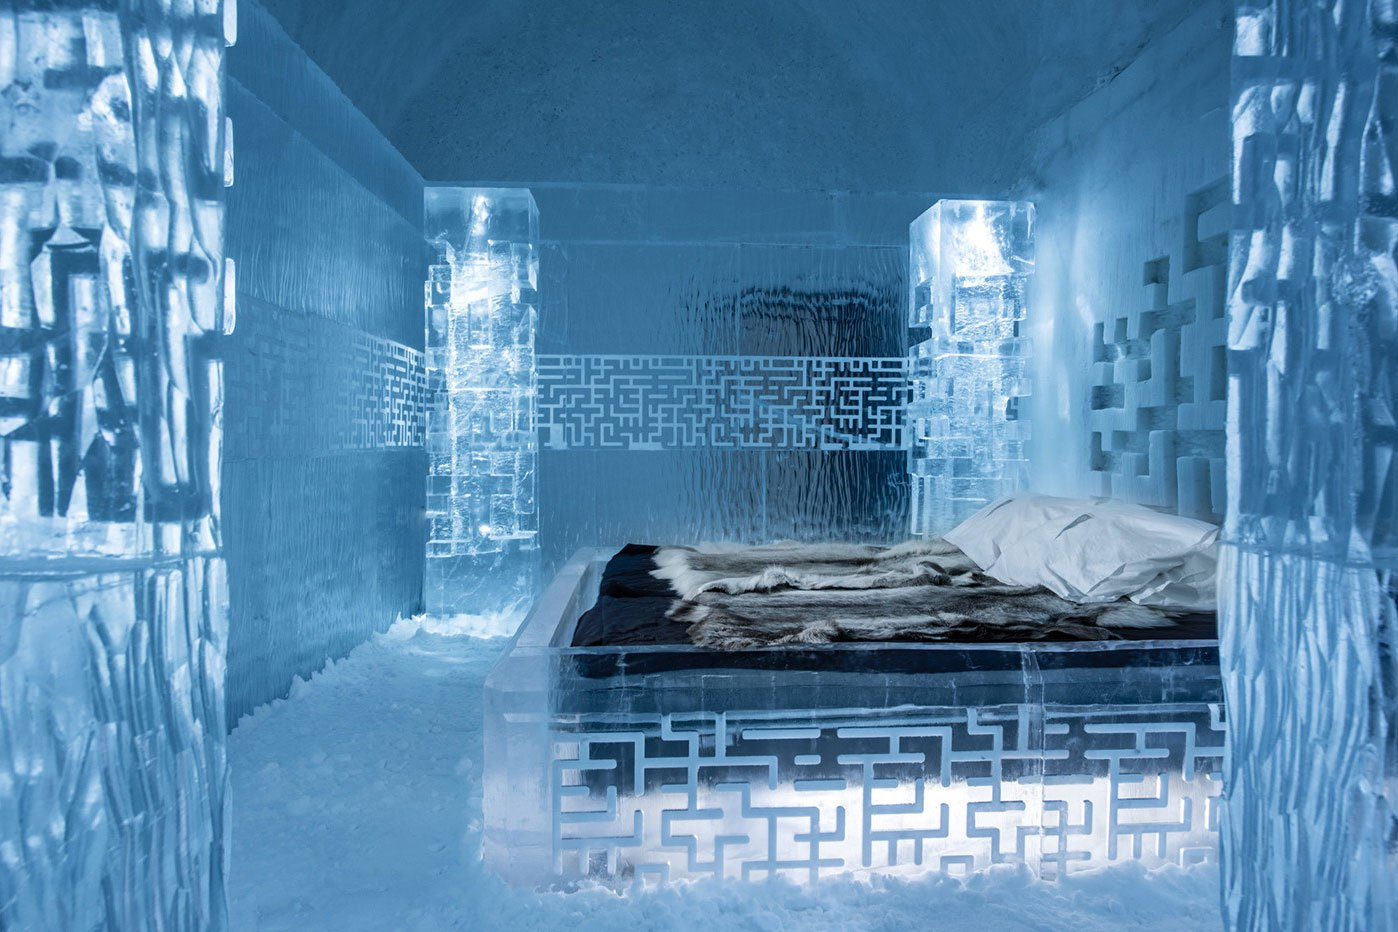 worlds-first-permanent-ice-hotel-6